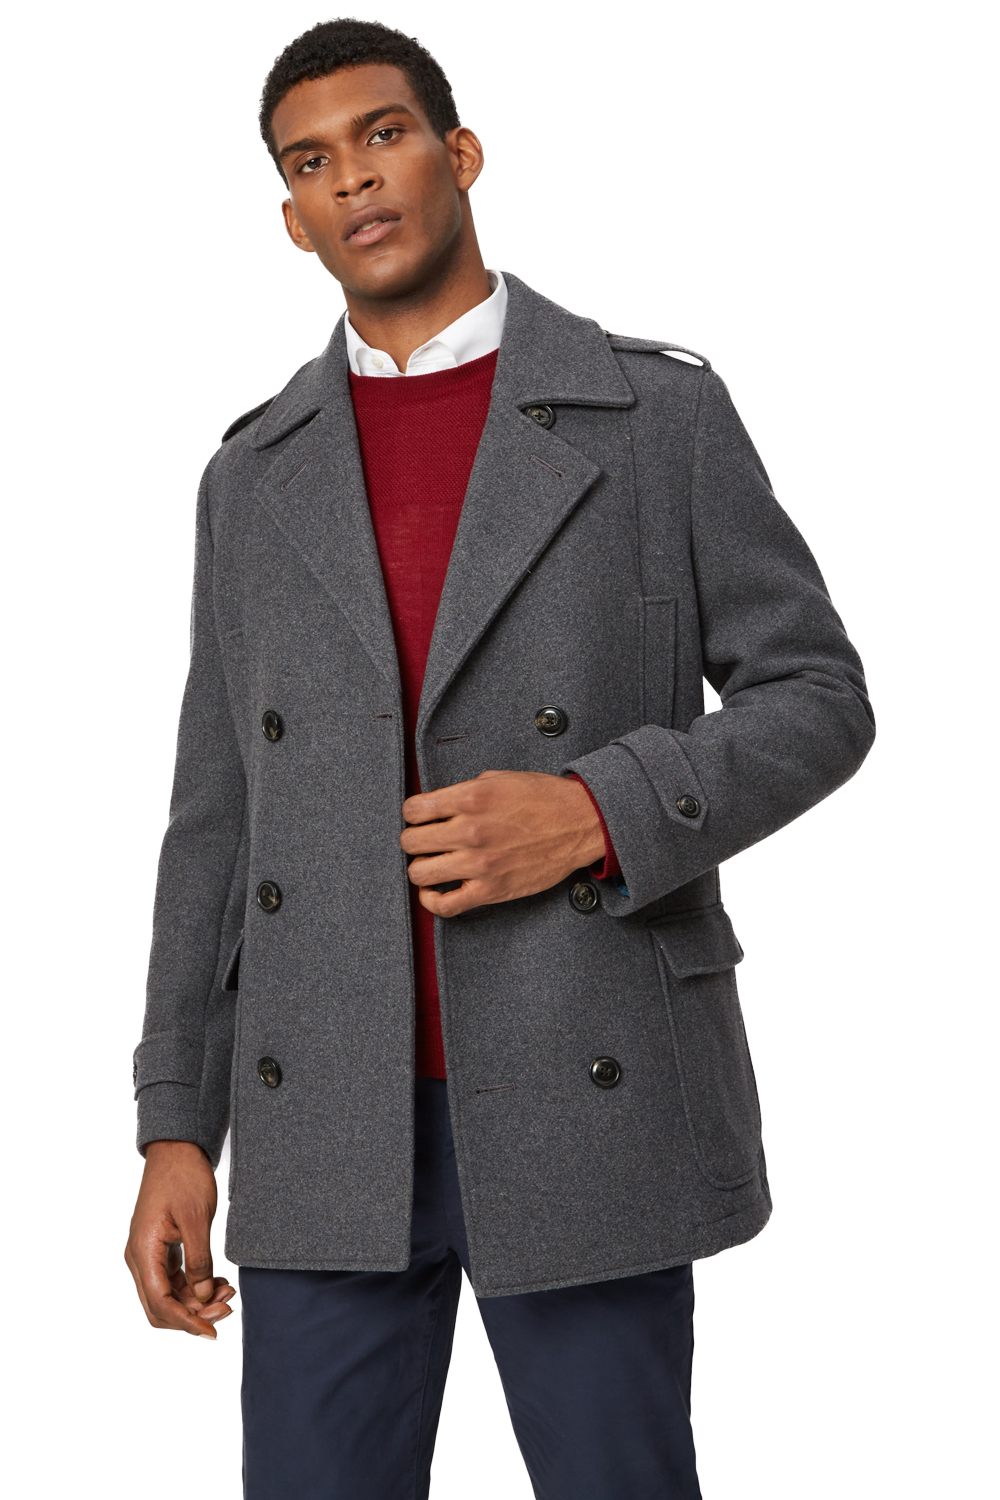 f70154e561a3 Moss 1851 Mens Tailored Fit Grey Pea Coat Double Breasted Winter Jacket